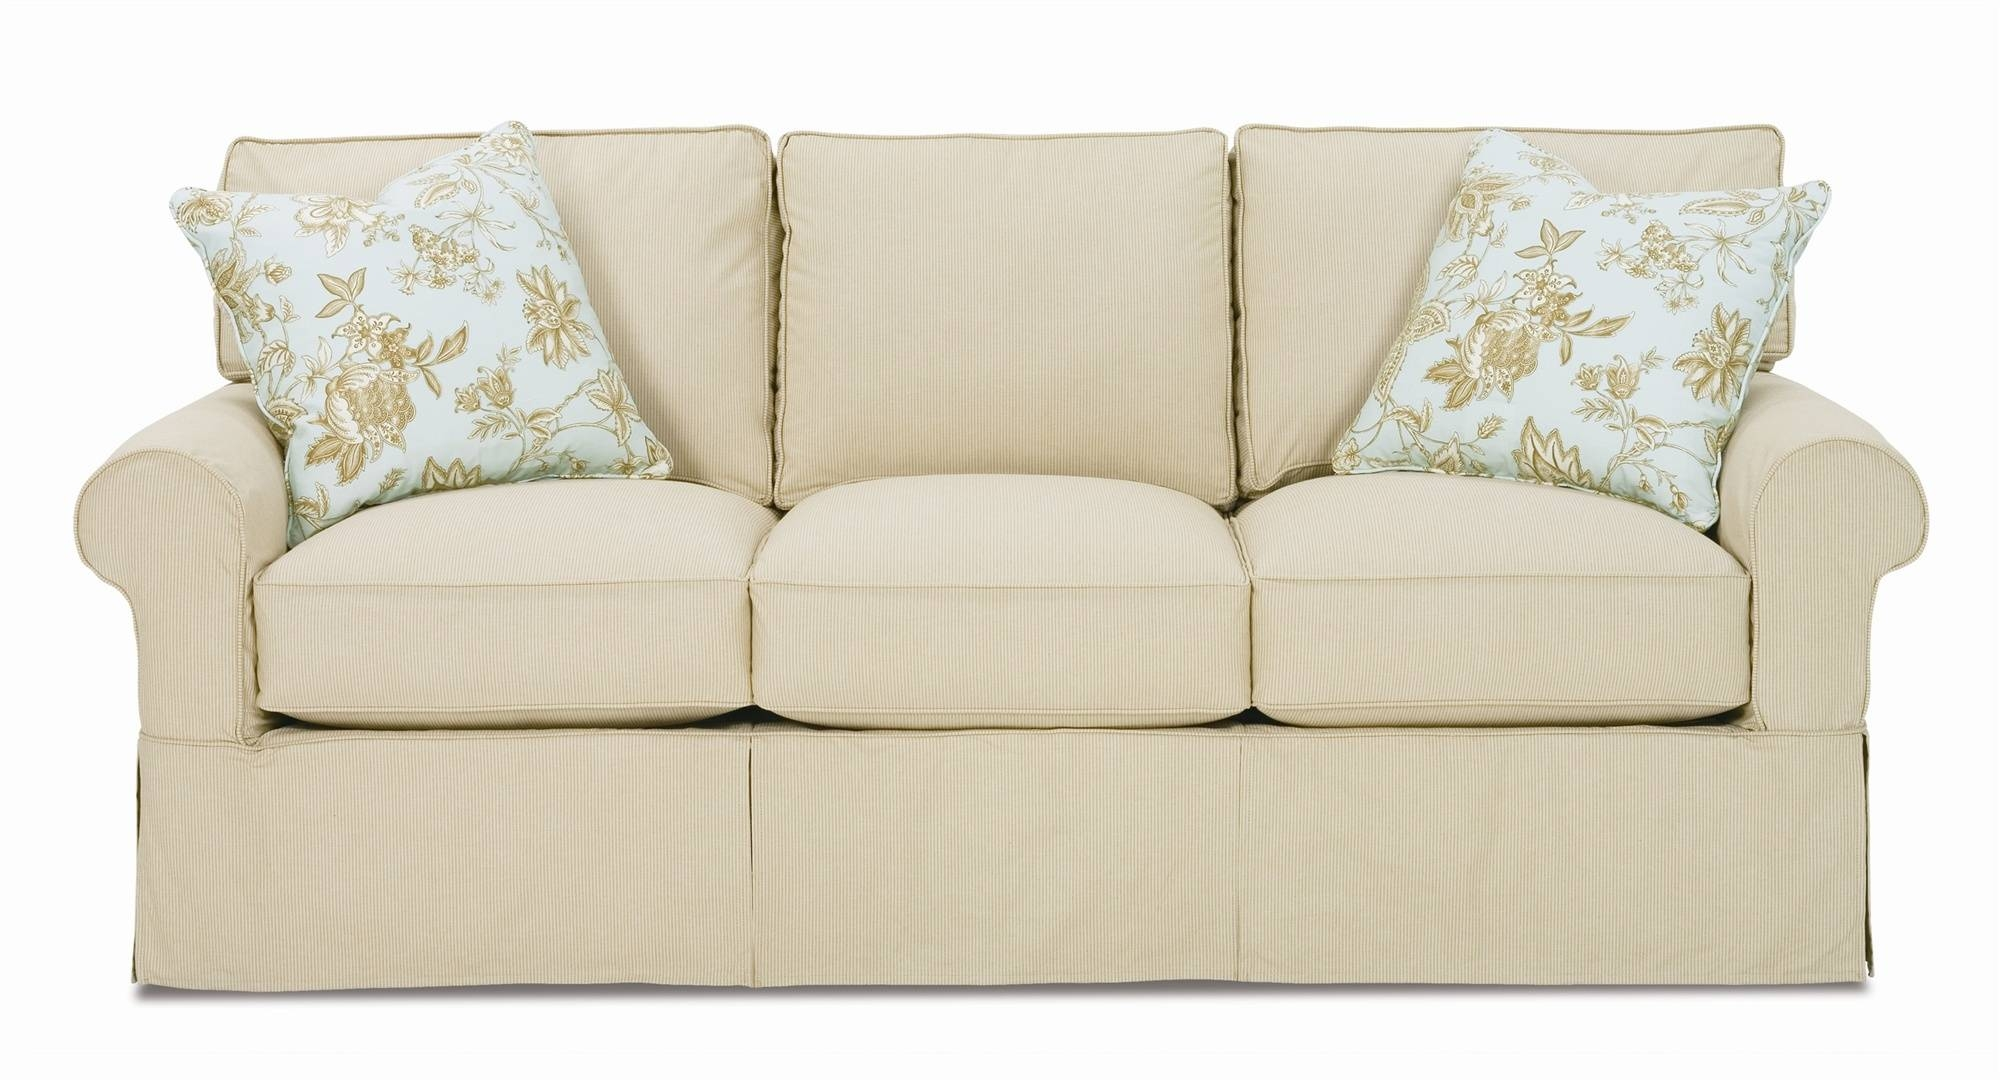 Decor: Lovely Shabby Chic Slipcovers For Enchanting Furniture Throughout Sofa Settee Covers (View 8 of 30)